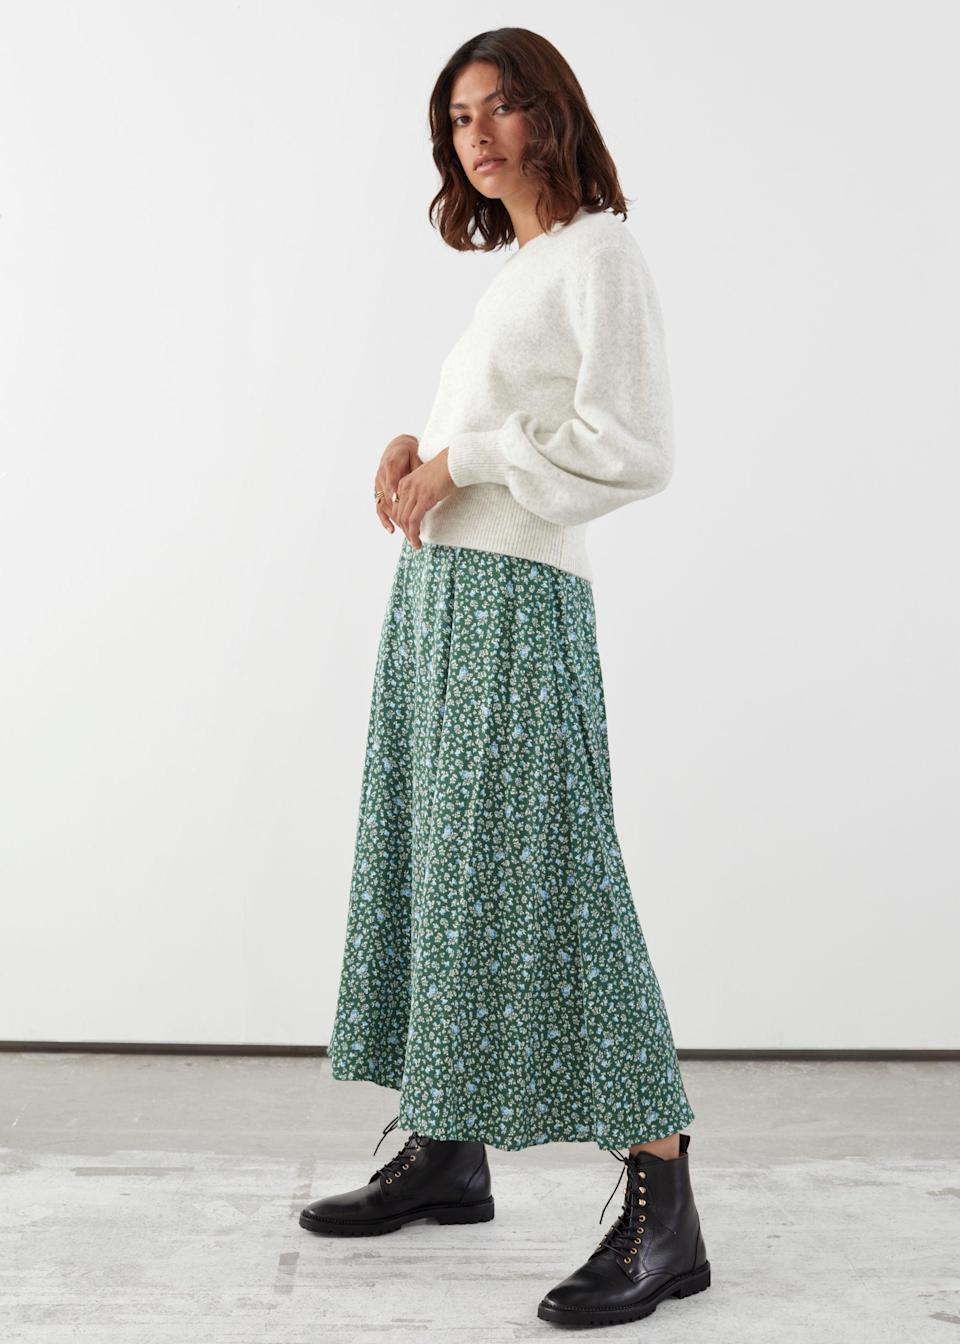 "<br><br><strong>& Other Stories</strong> Viscose Midi Skirt, $, available at <a href=""https://go.skimresources.com/?id=30283X879131&url=https%3A%2F%2Fwww.stories.com%2Fen_usd%2Fclothing%2Fskirts%2Fmidi-skirts%2Fproduct.viscose-midi-skirt-green.0868945003.html"" rel=""nofollow noopener"" target=""_blank"" data-ylk=""slk:& Other Stories"" class=""link rapid-noclick-resp"">& Other Stories</a>"